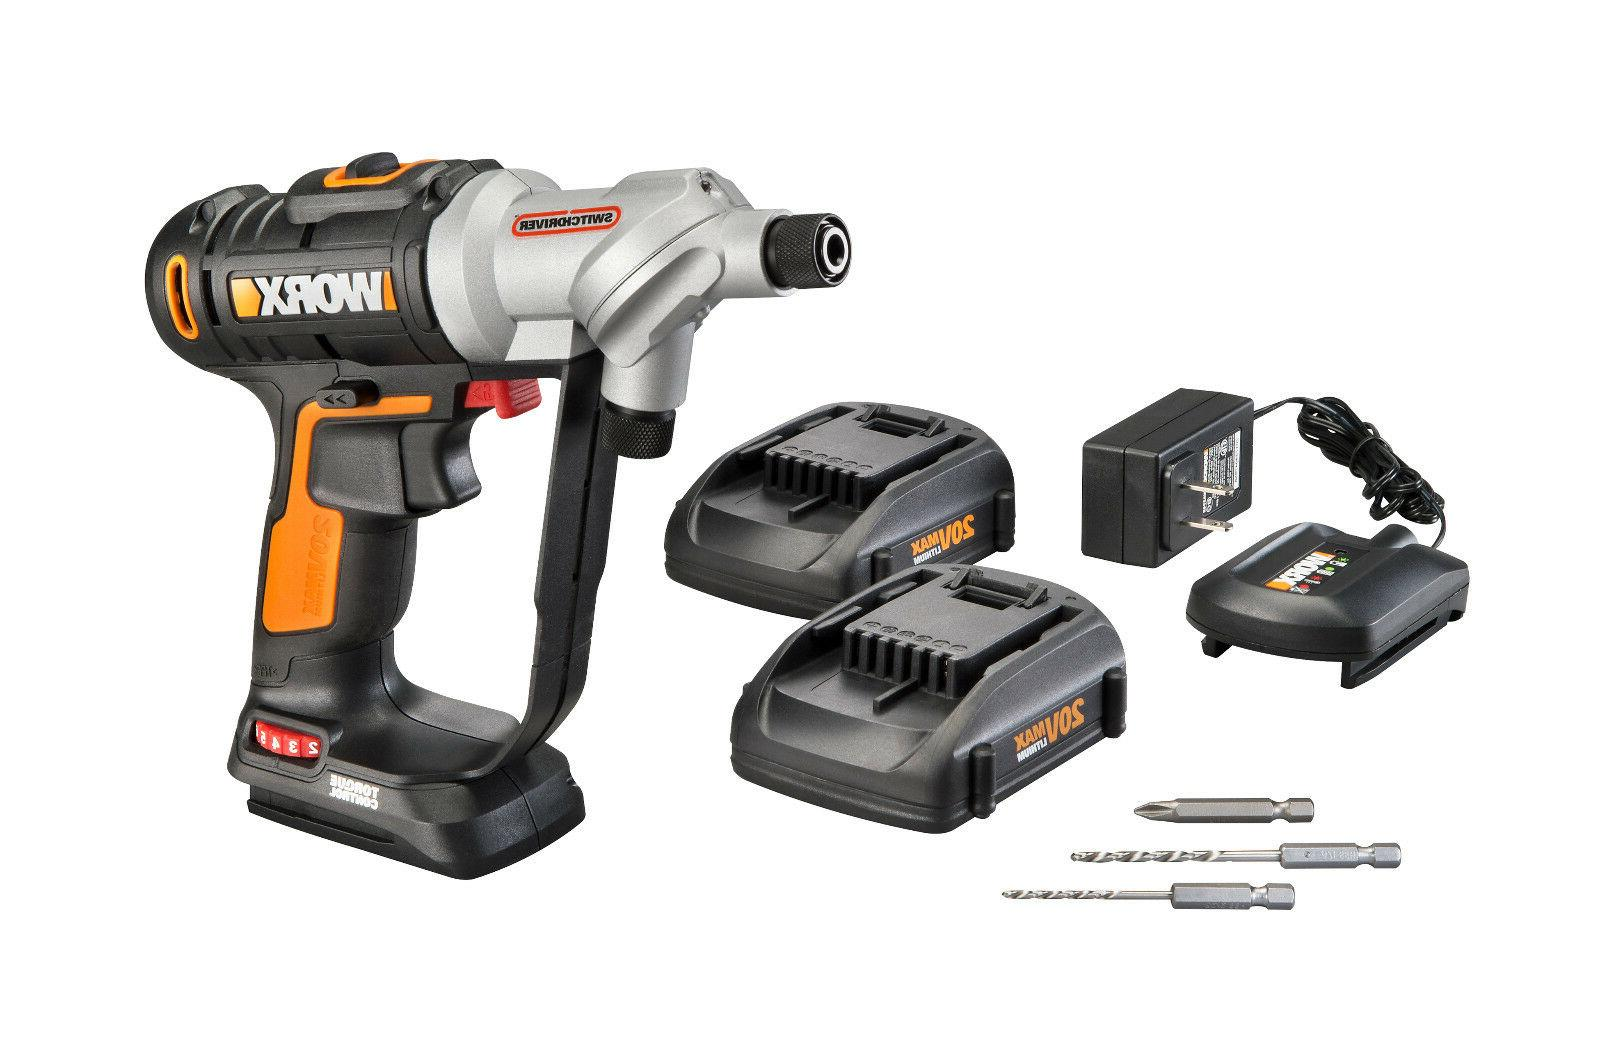 wx176l 5 switchdriver 20v powershare cordless drill